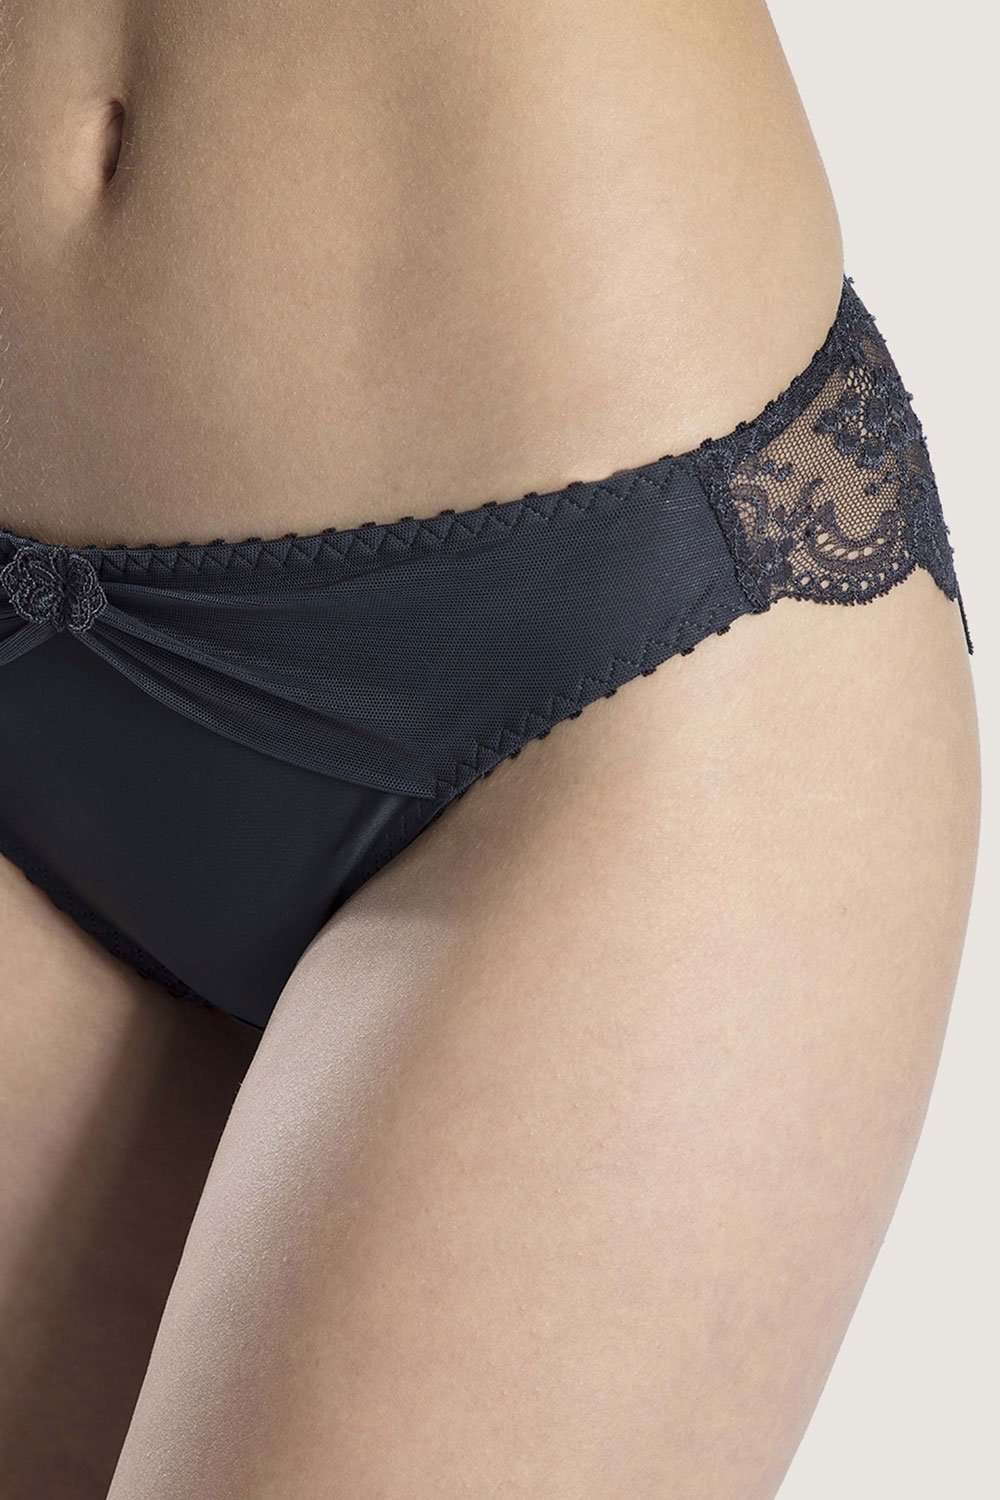 Aubade à l'Amour Italian Brief - French Lingerie - Naughty Knickers